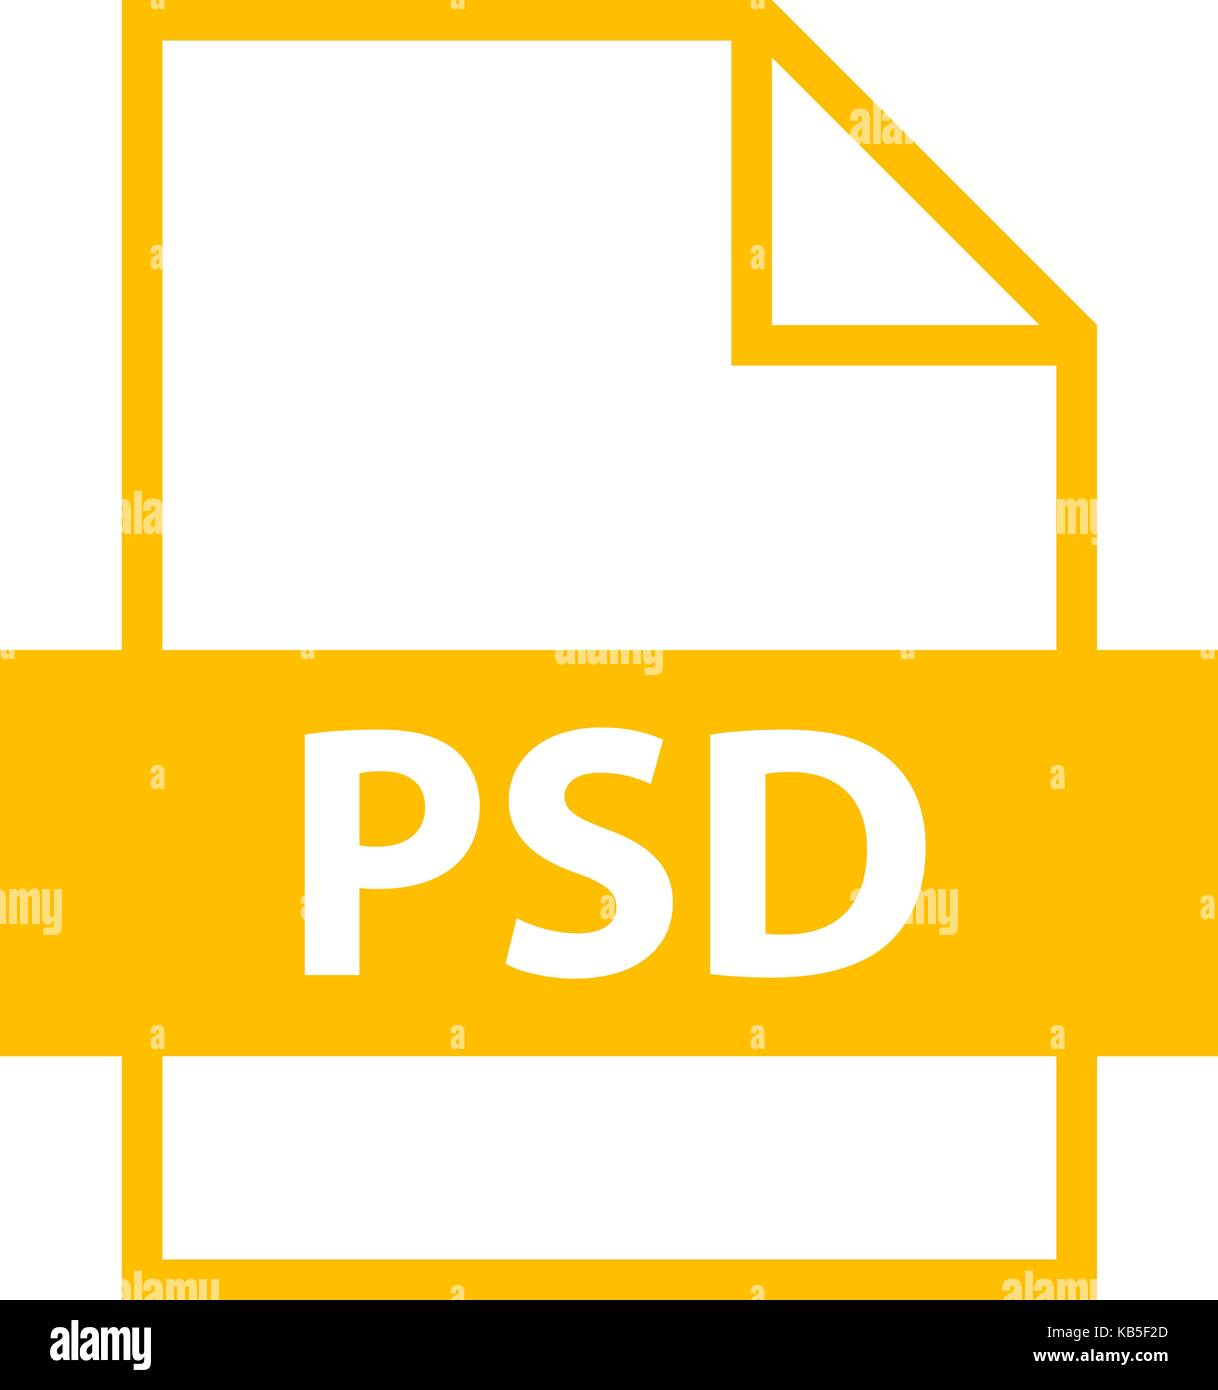 Use it in all your designs. Filename extension icon PSD PhotoShop Document in flat style. Quick easy recolorable - Stock Image